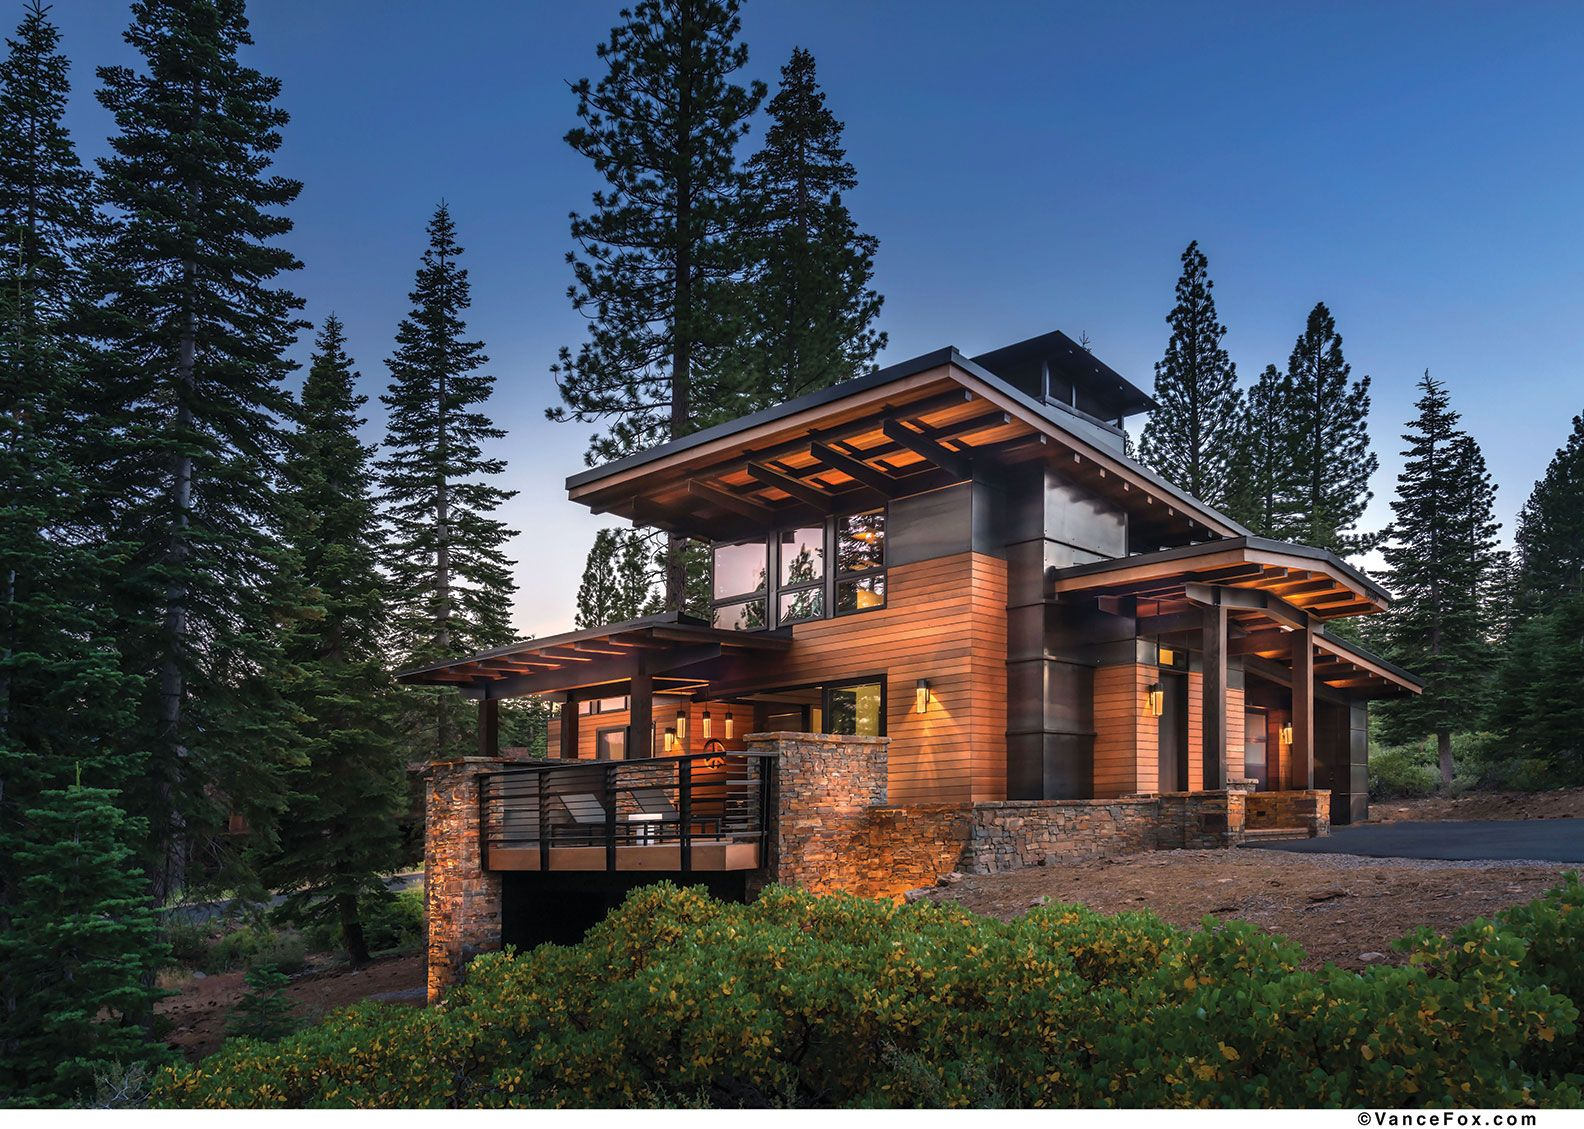 This house is absolutely stunning home tahoe